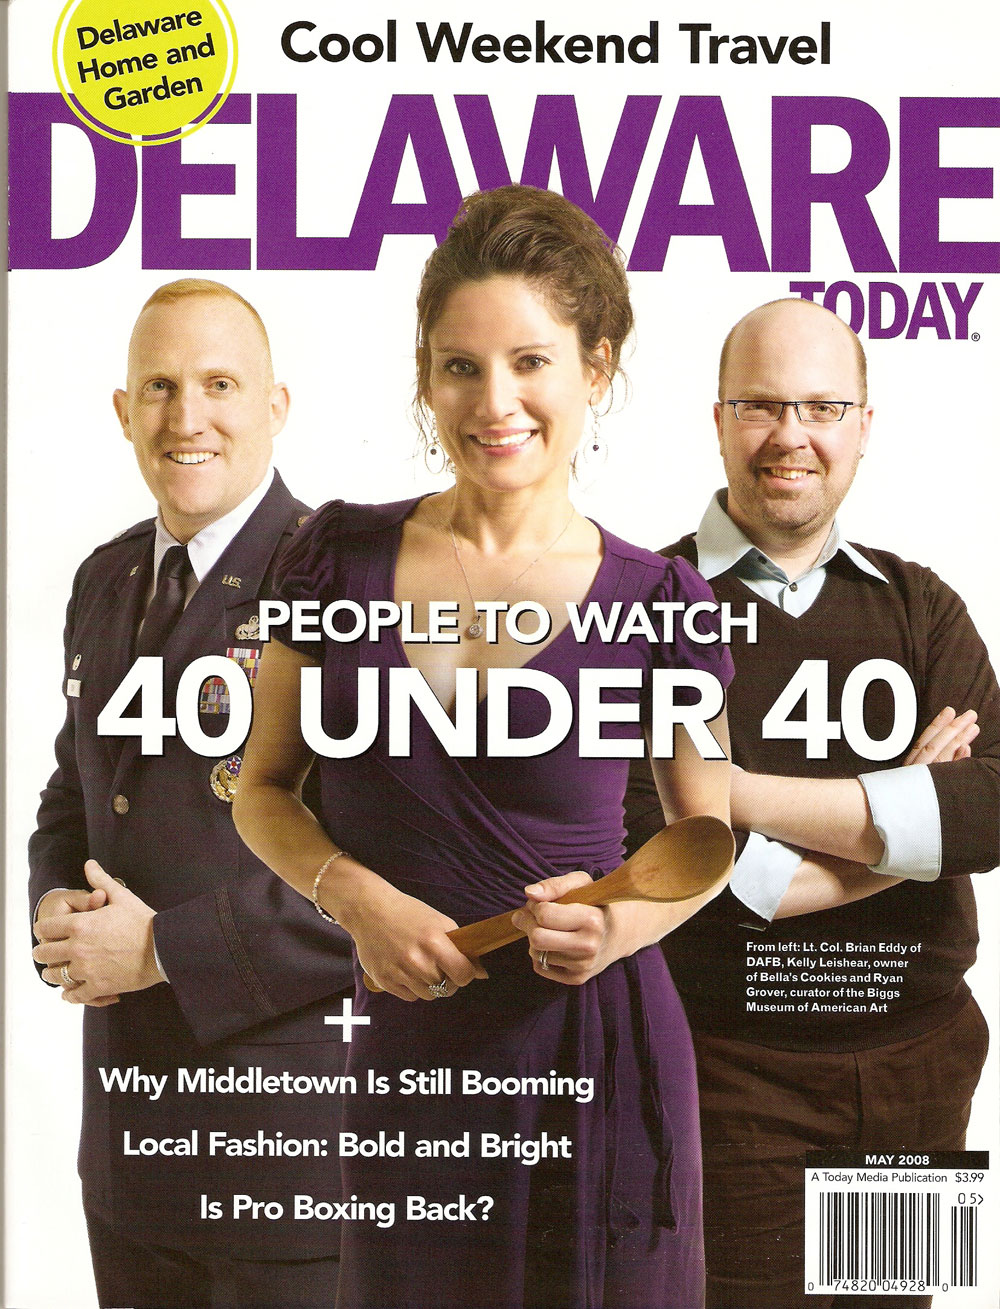 Delaware Today Magazine - 40 under 40